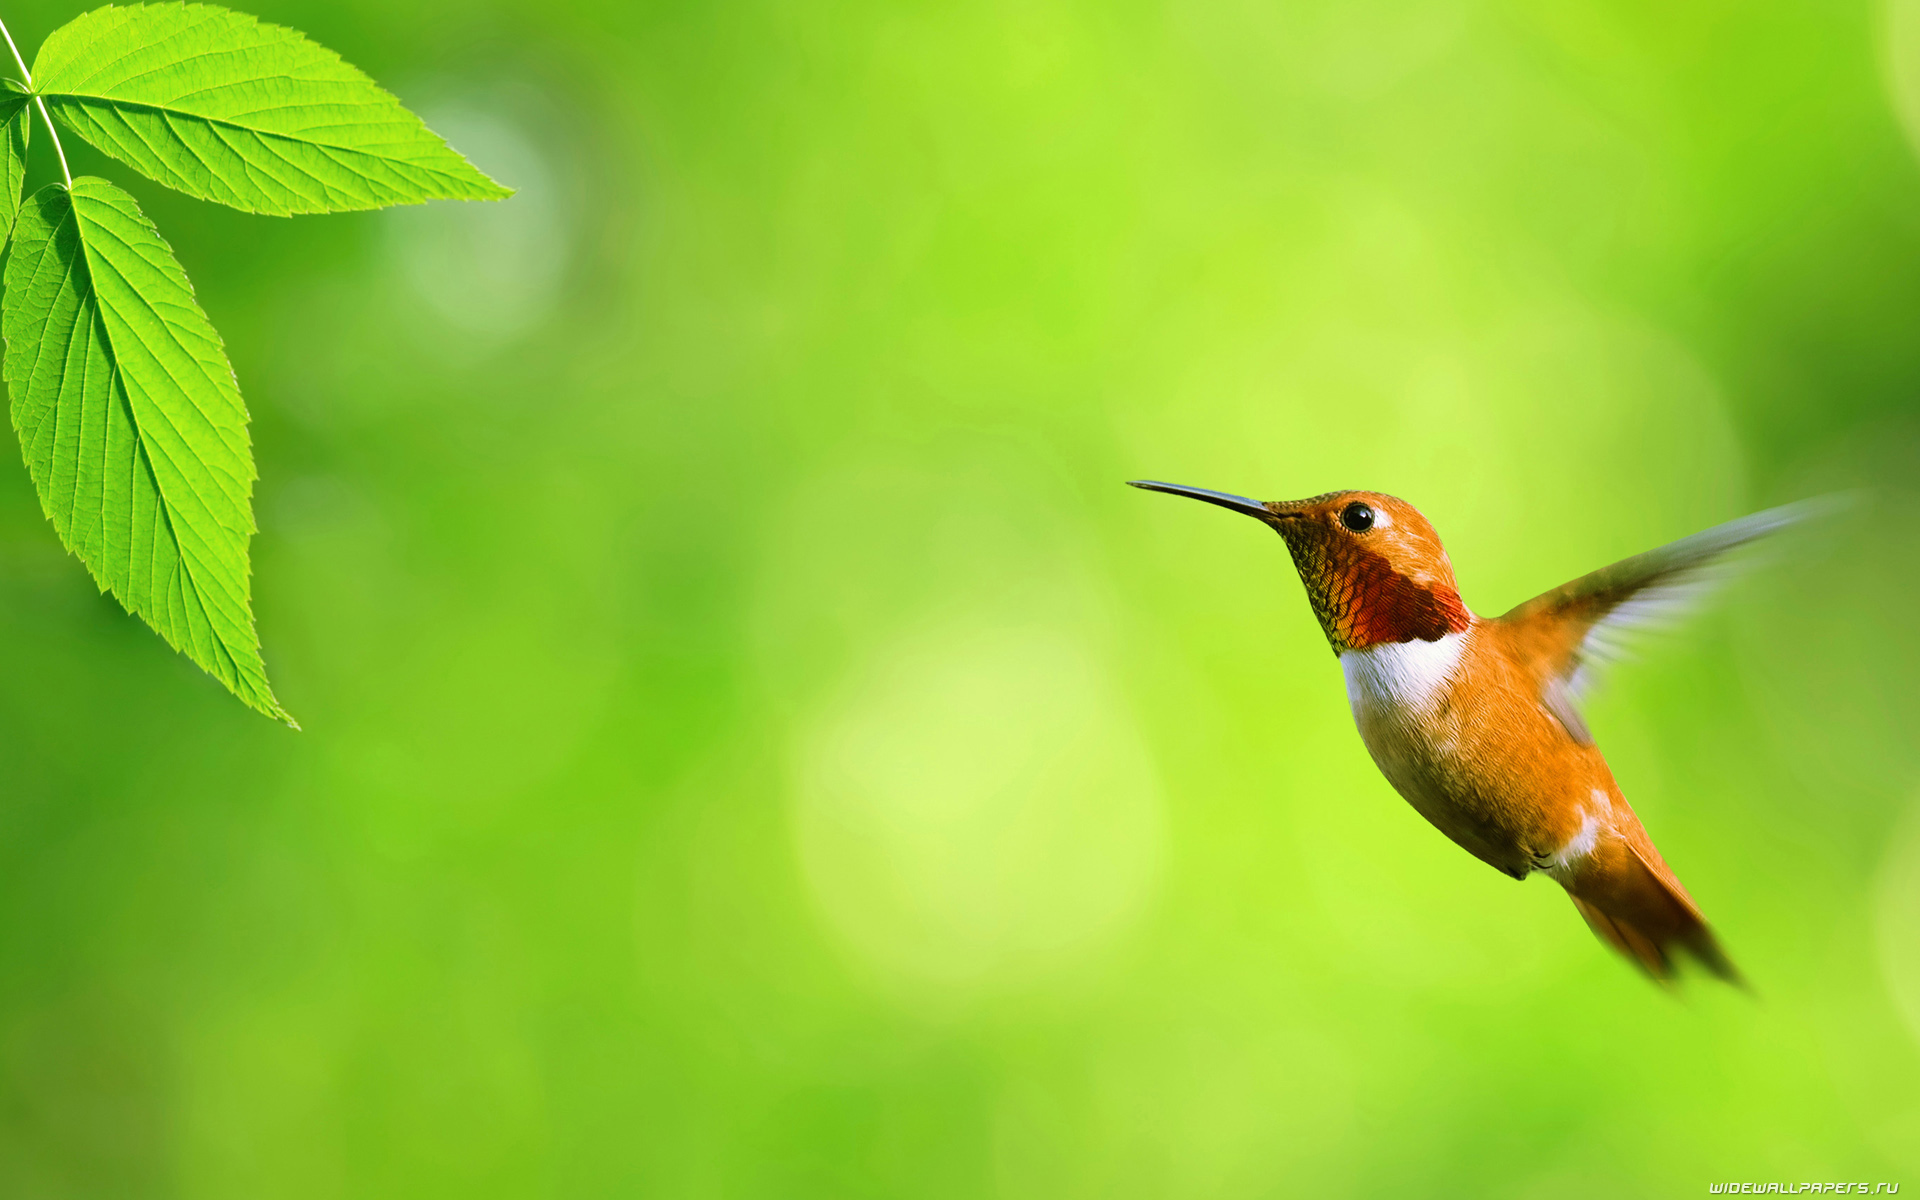 bird wallpaper backgrounds A3 HD Desktop Wallpapers 4k HD